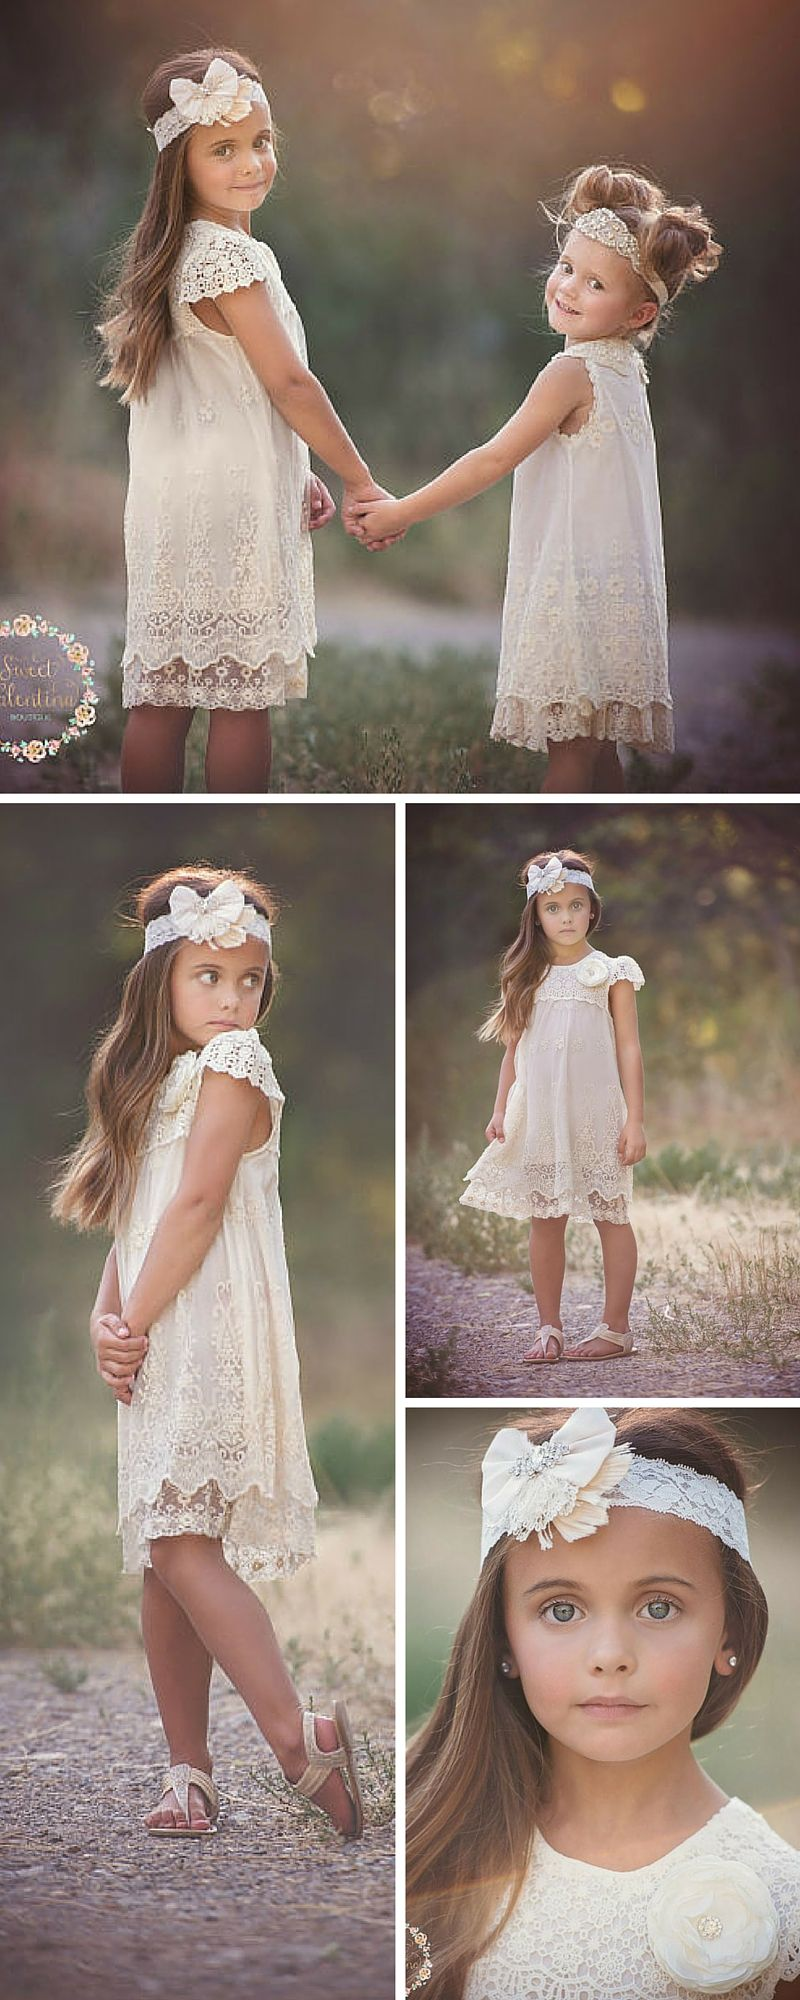 Beautiful vintage inspired dress for cute flower girls in